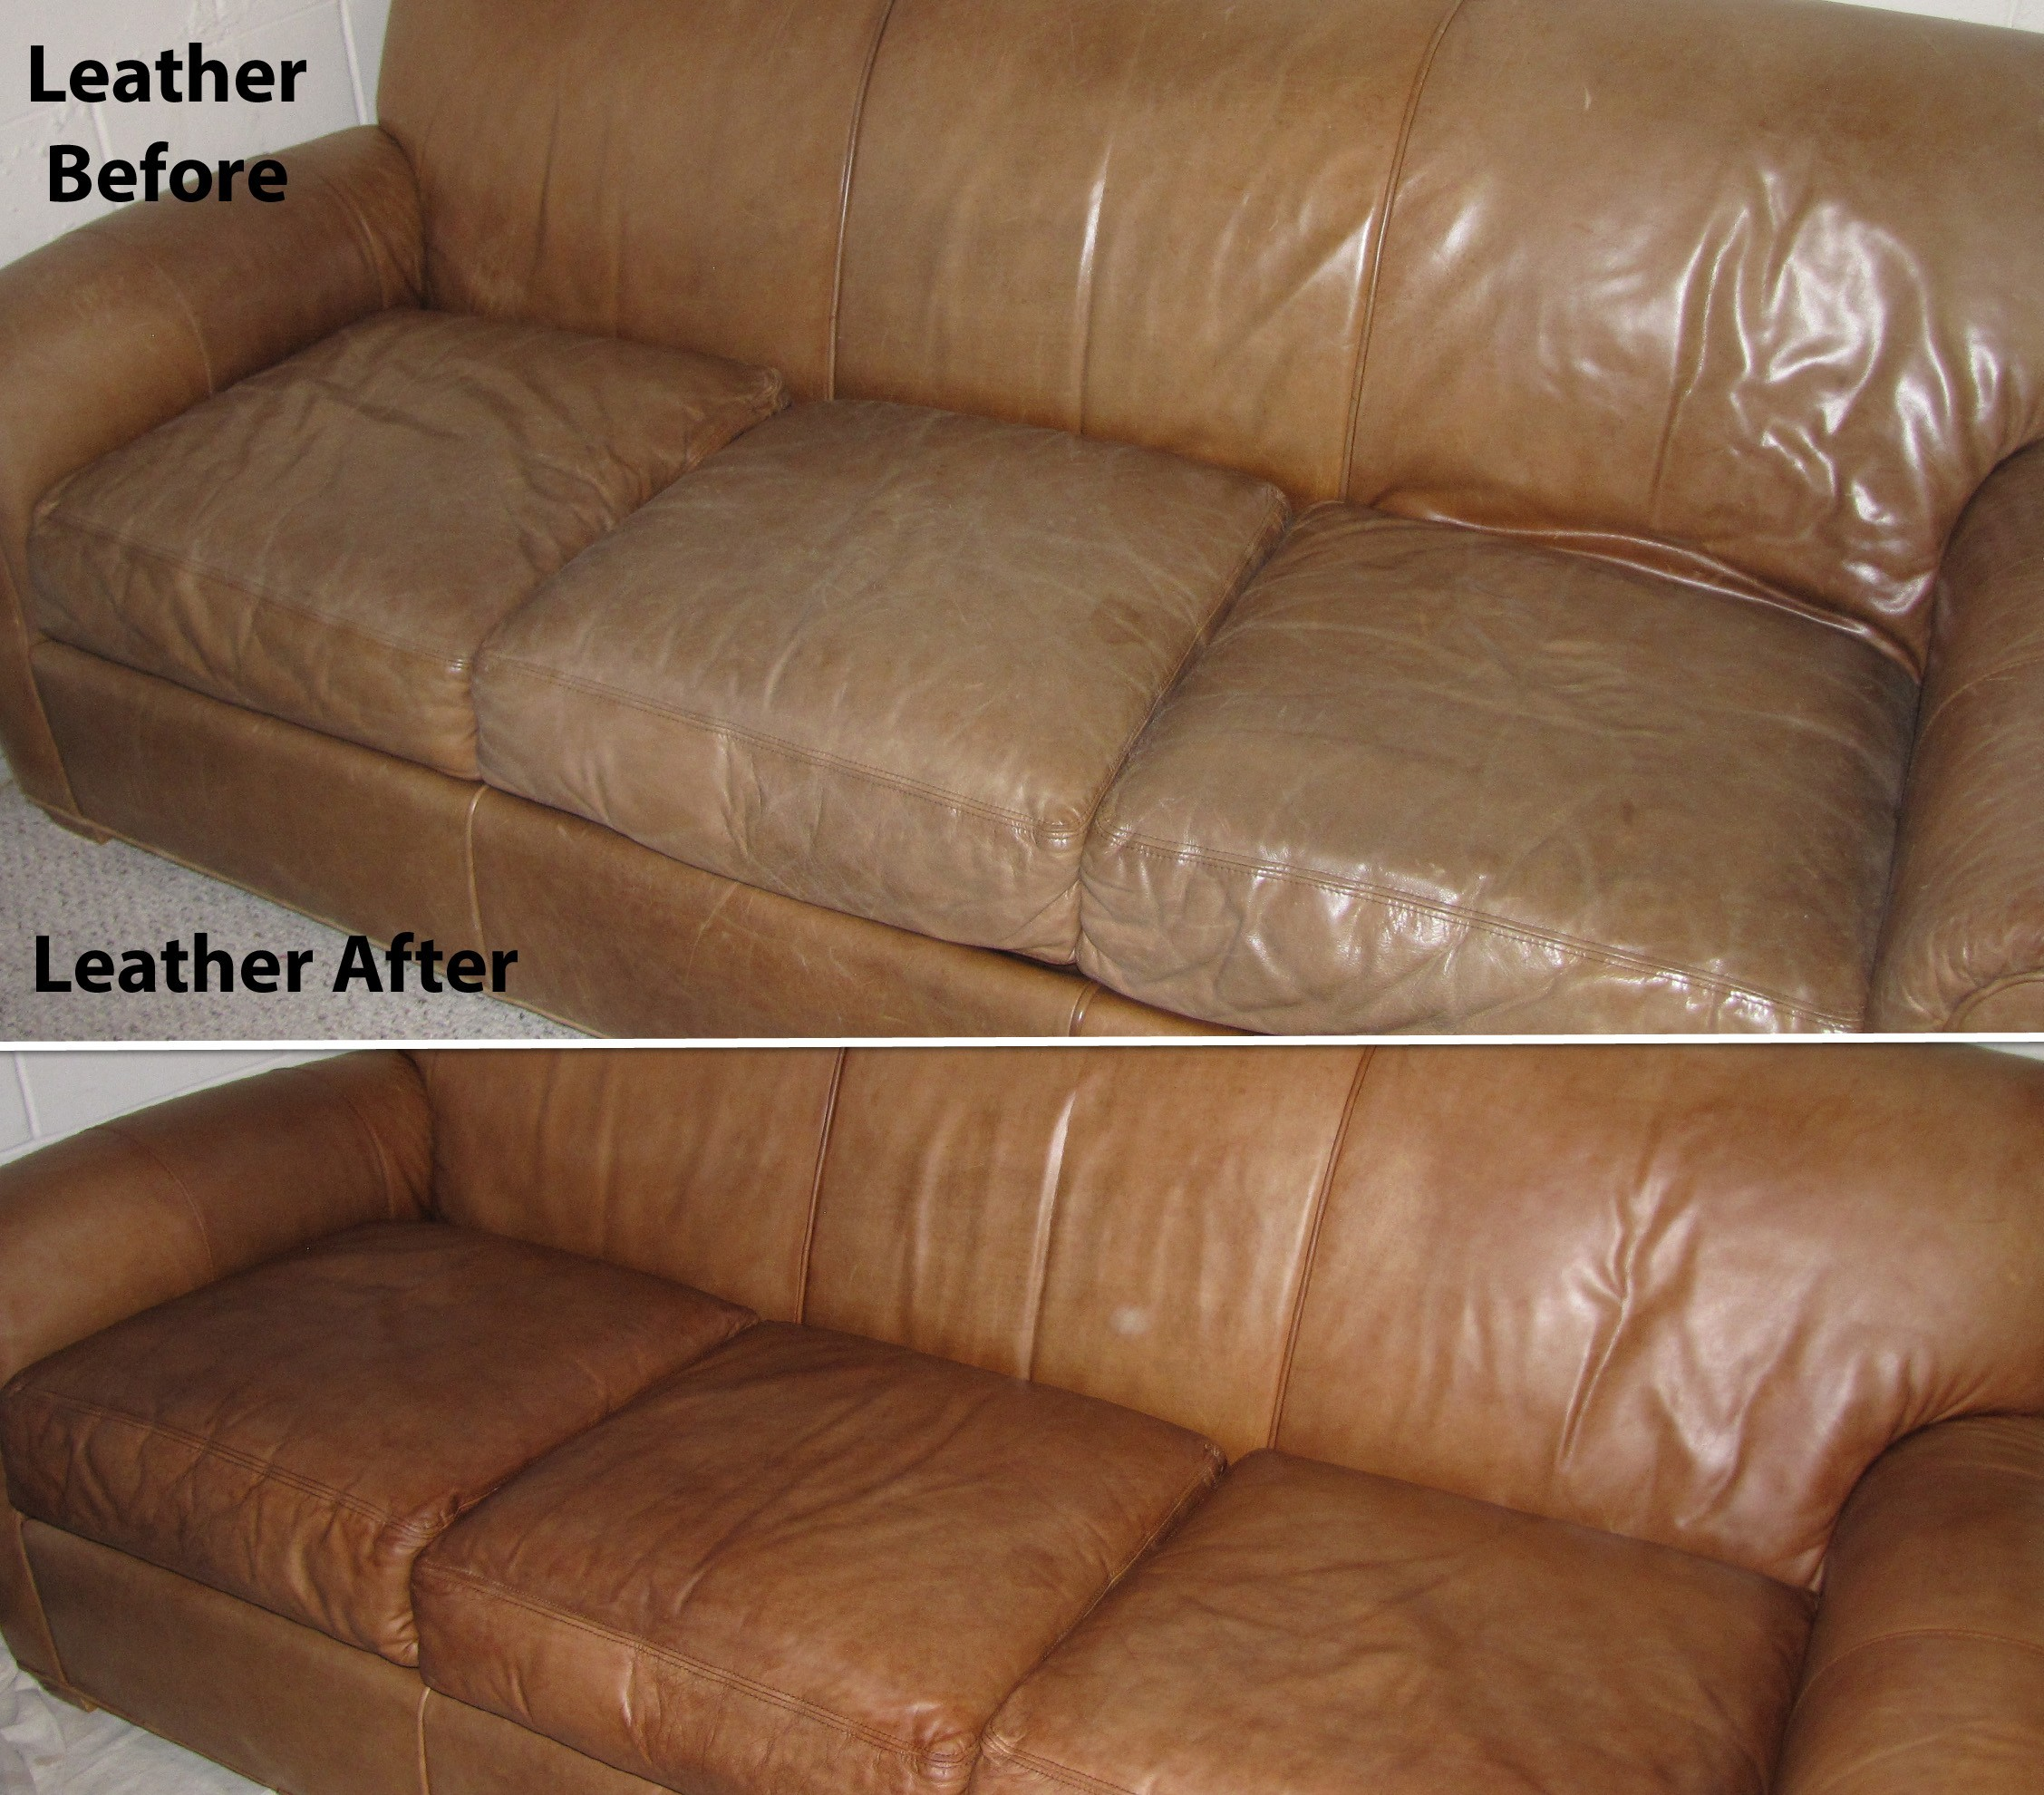 How to Clean Leather sofa Beautiful Awesome Leather sofa Cleaner Wallpapers Layout